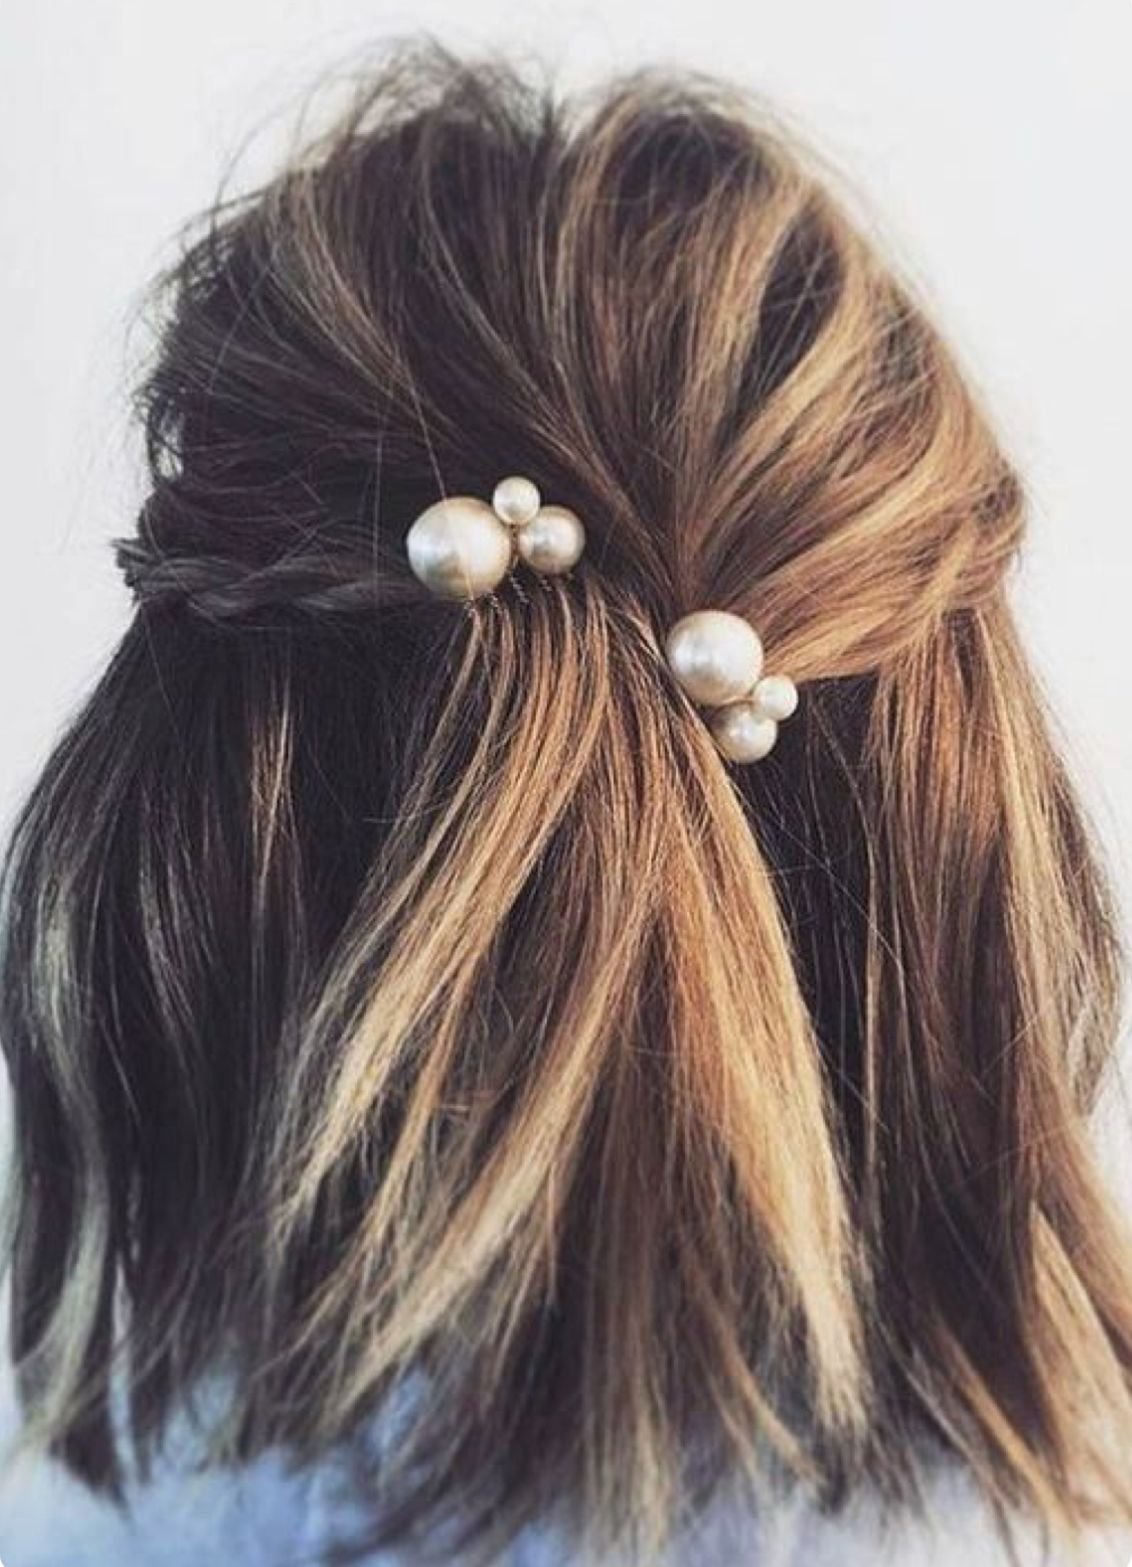 Pin by deanna ferguson on big hair pinterest pearls detail and